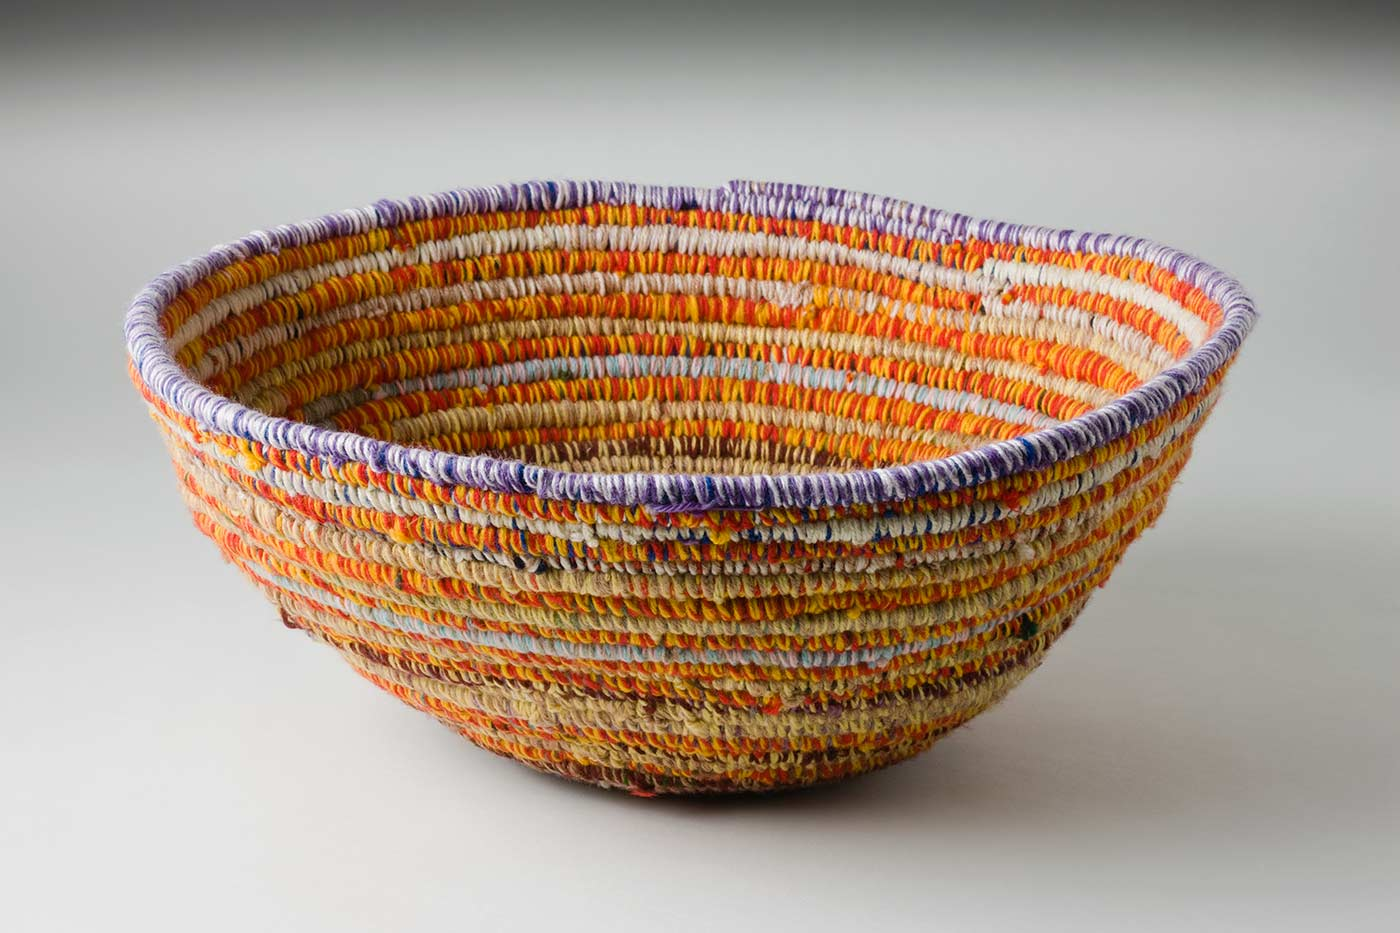 A circular coiled multicoloured yarn and plant fibre basket. The plant fibre in the very centre of the basket is covered with orange-green yarn, followed by horizontal alternate yarn coverings over the fibre. The alternate yarn colours are brown, brown-blue, yellow-blue, yellow-brown, tan-cream, tan-brown, cream-pink, red-yellow, yellow-tan, light blue-light pink with various combinations of red, yellow, tan and white up to the top coil. The top plant fibre coil is covered by white-purple yarn. - click to view larger image